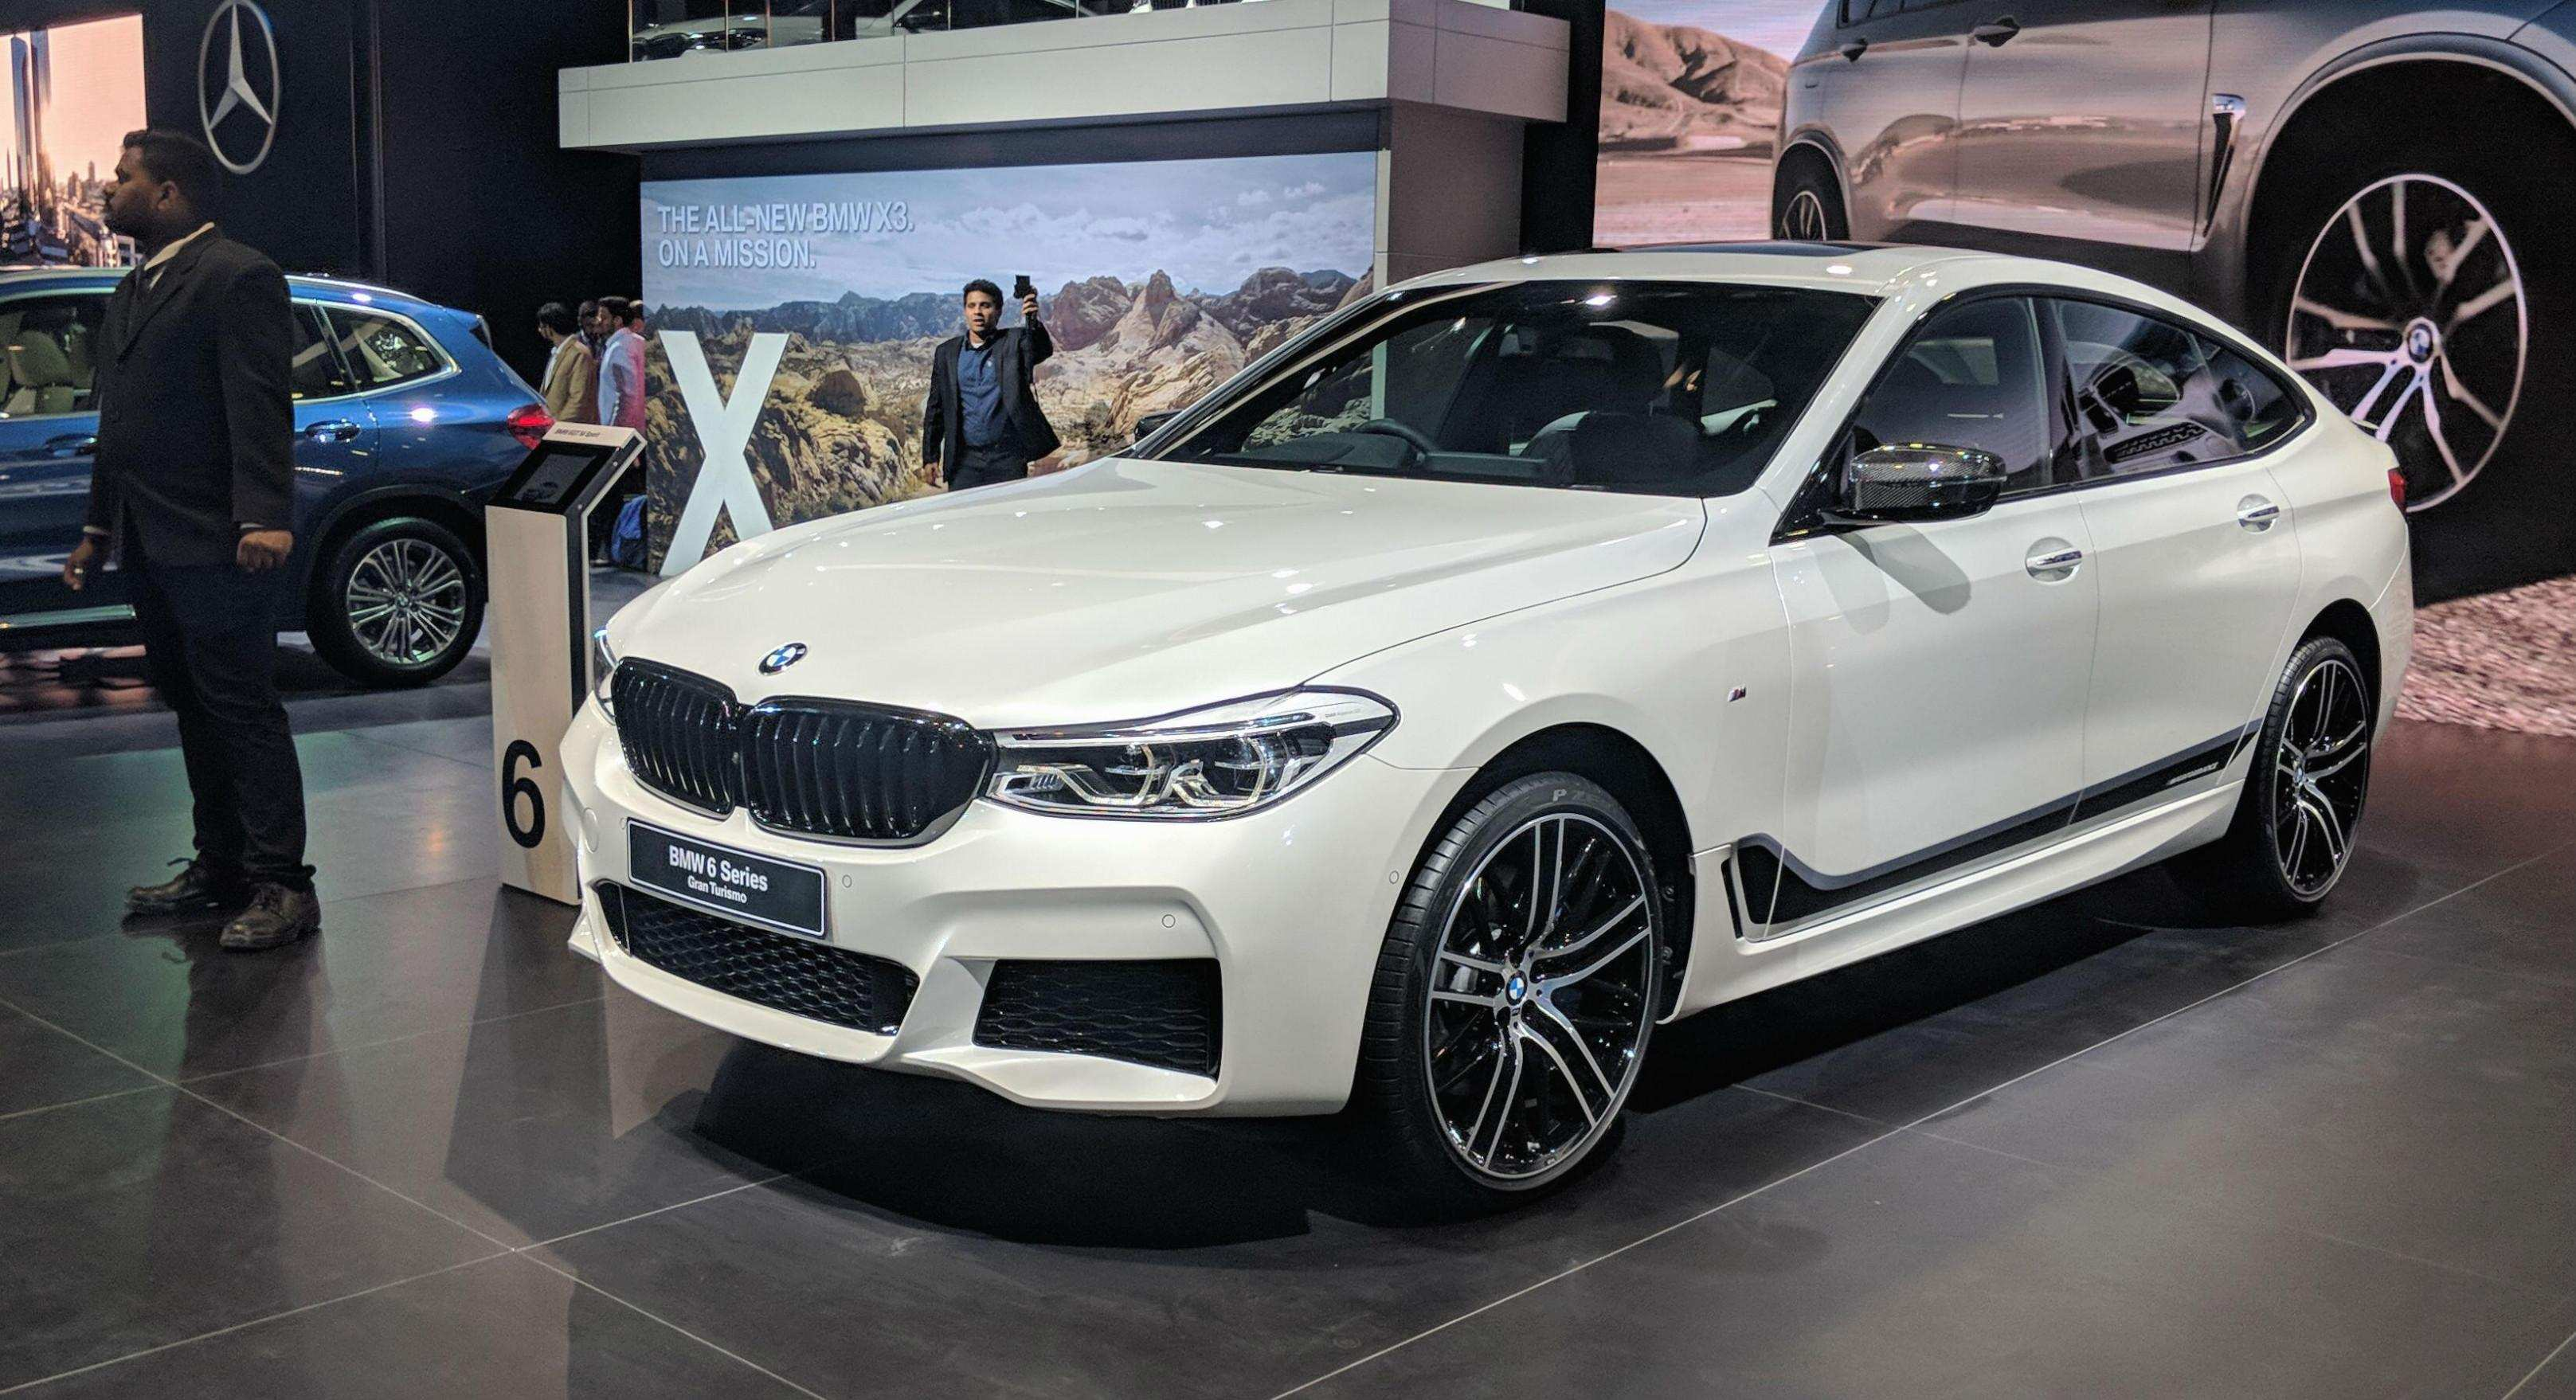 64 All New 2019 Bmw 6 Series Release Date Release Date And Concept